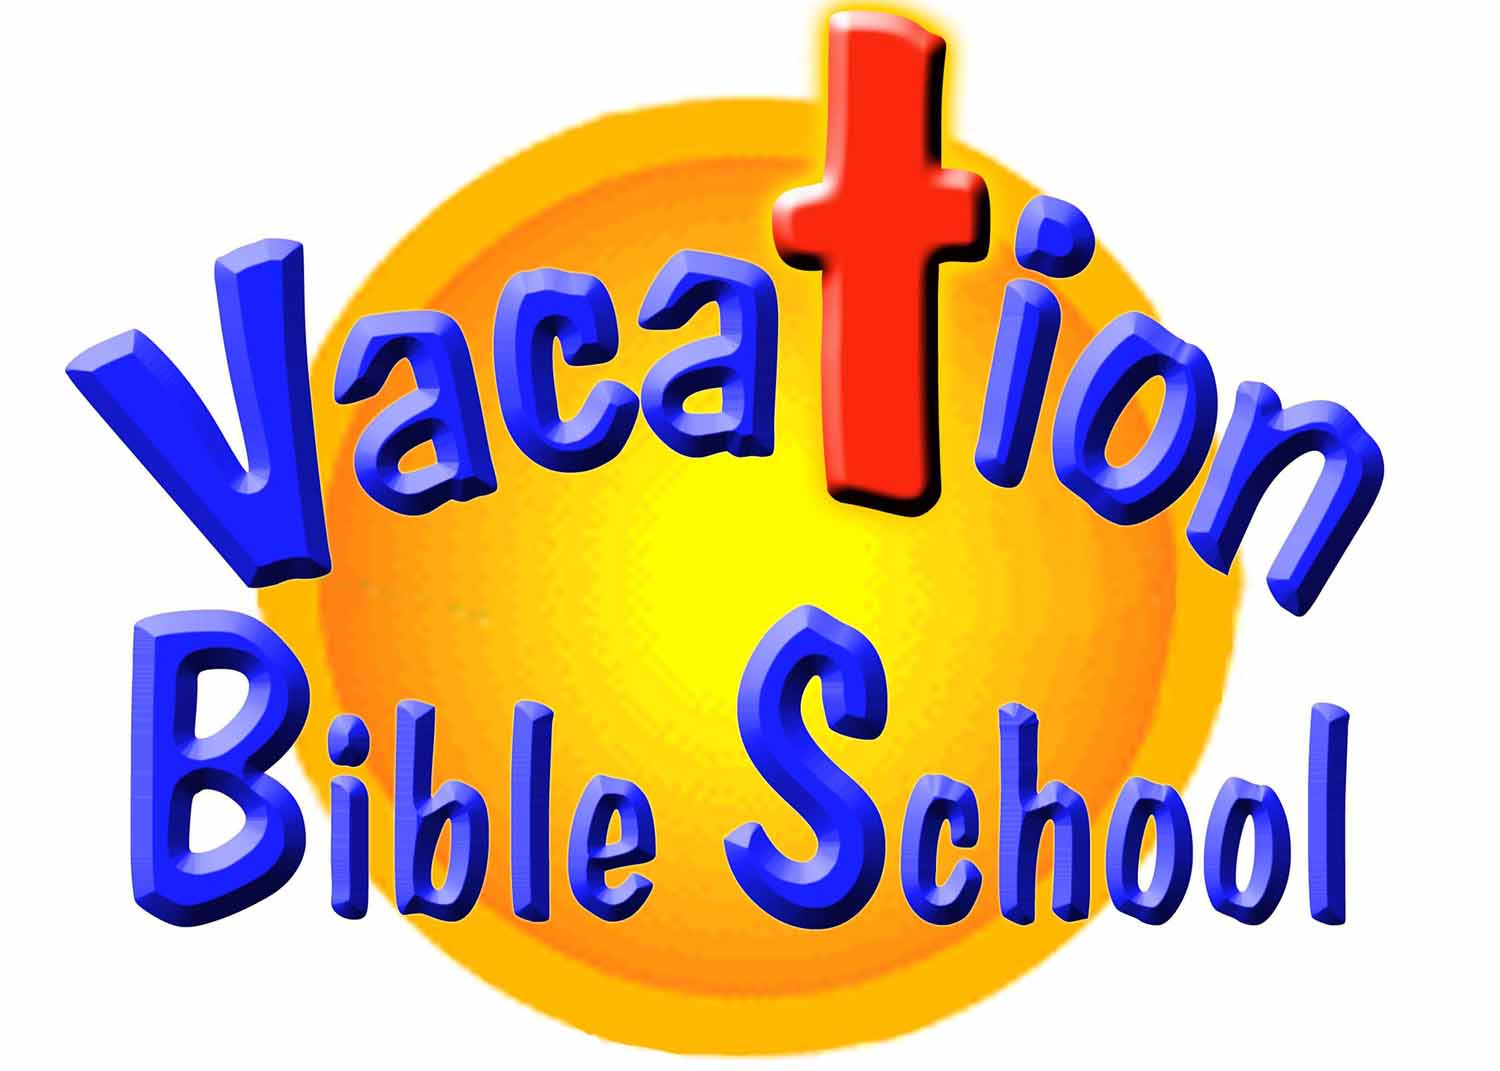 Vacation bible school certificate templates sonundrobin vacation bible school certificate templates 1betcityfo Images